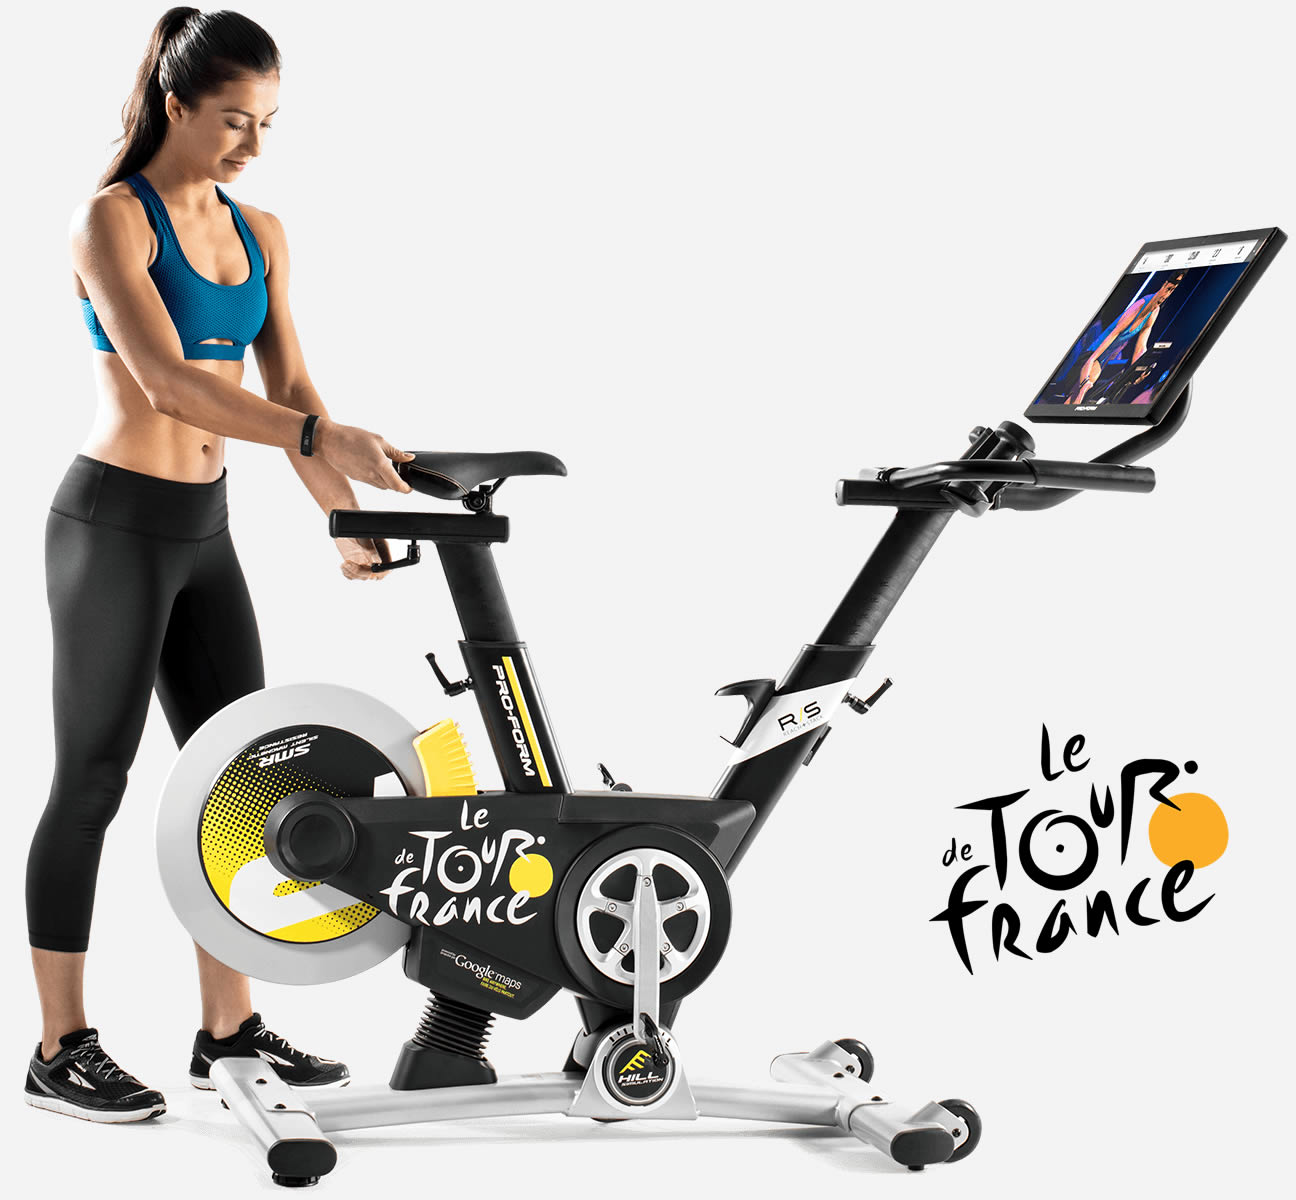 TDF Pro Bike is a great addition to a fitness program, especially with the inclusion of iFit Coach over 800 workouts, recipes and fitness recommendations.